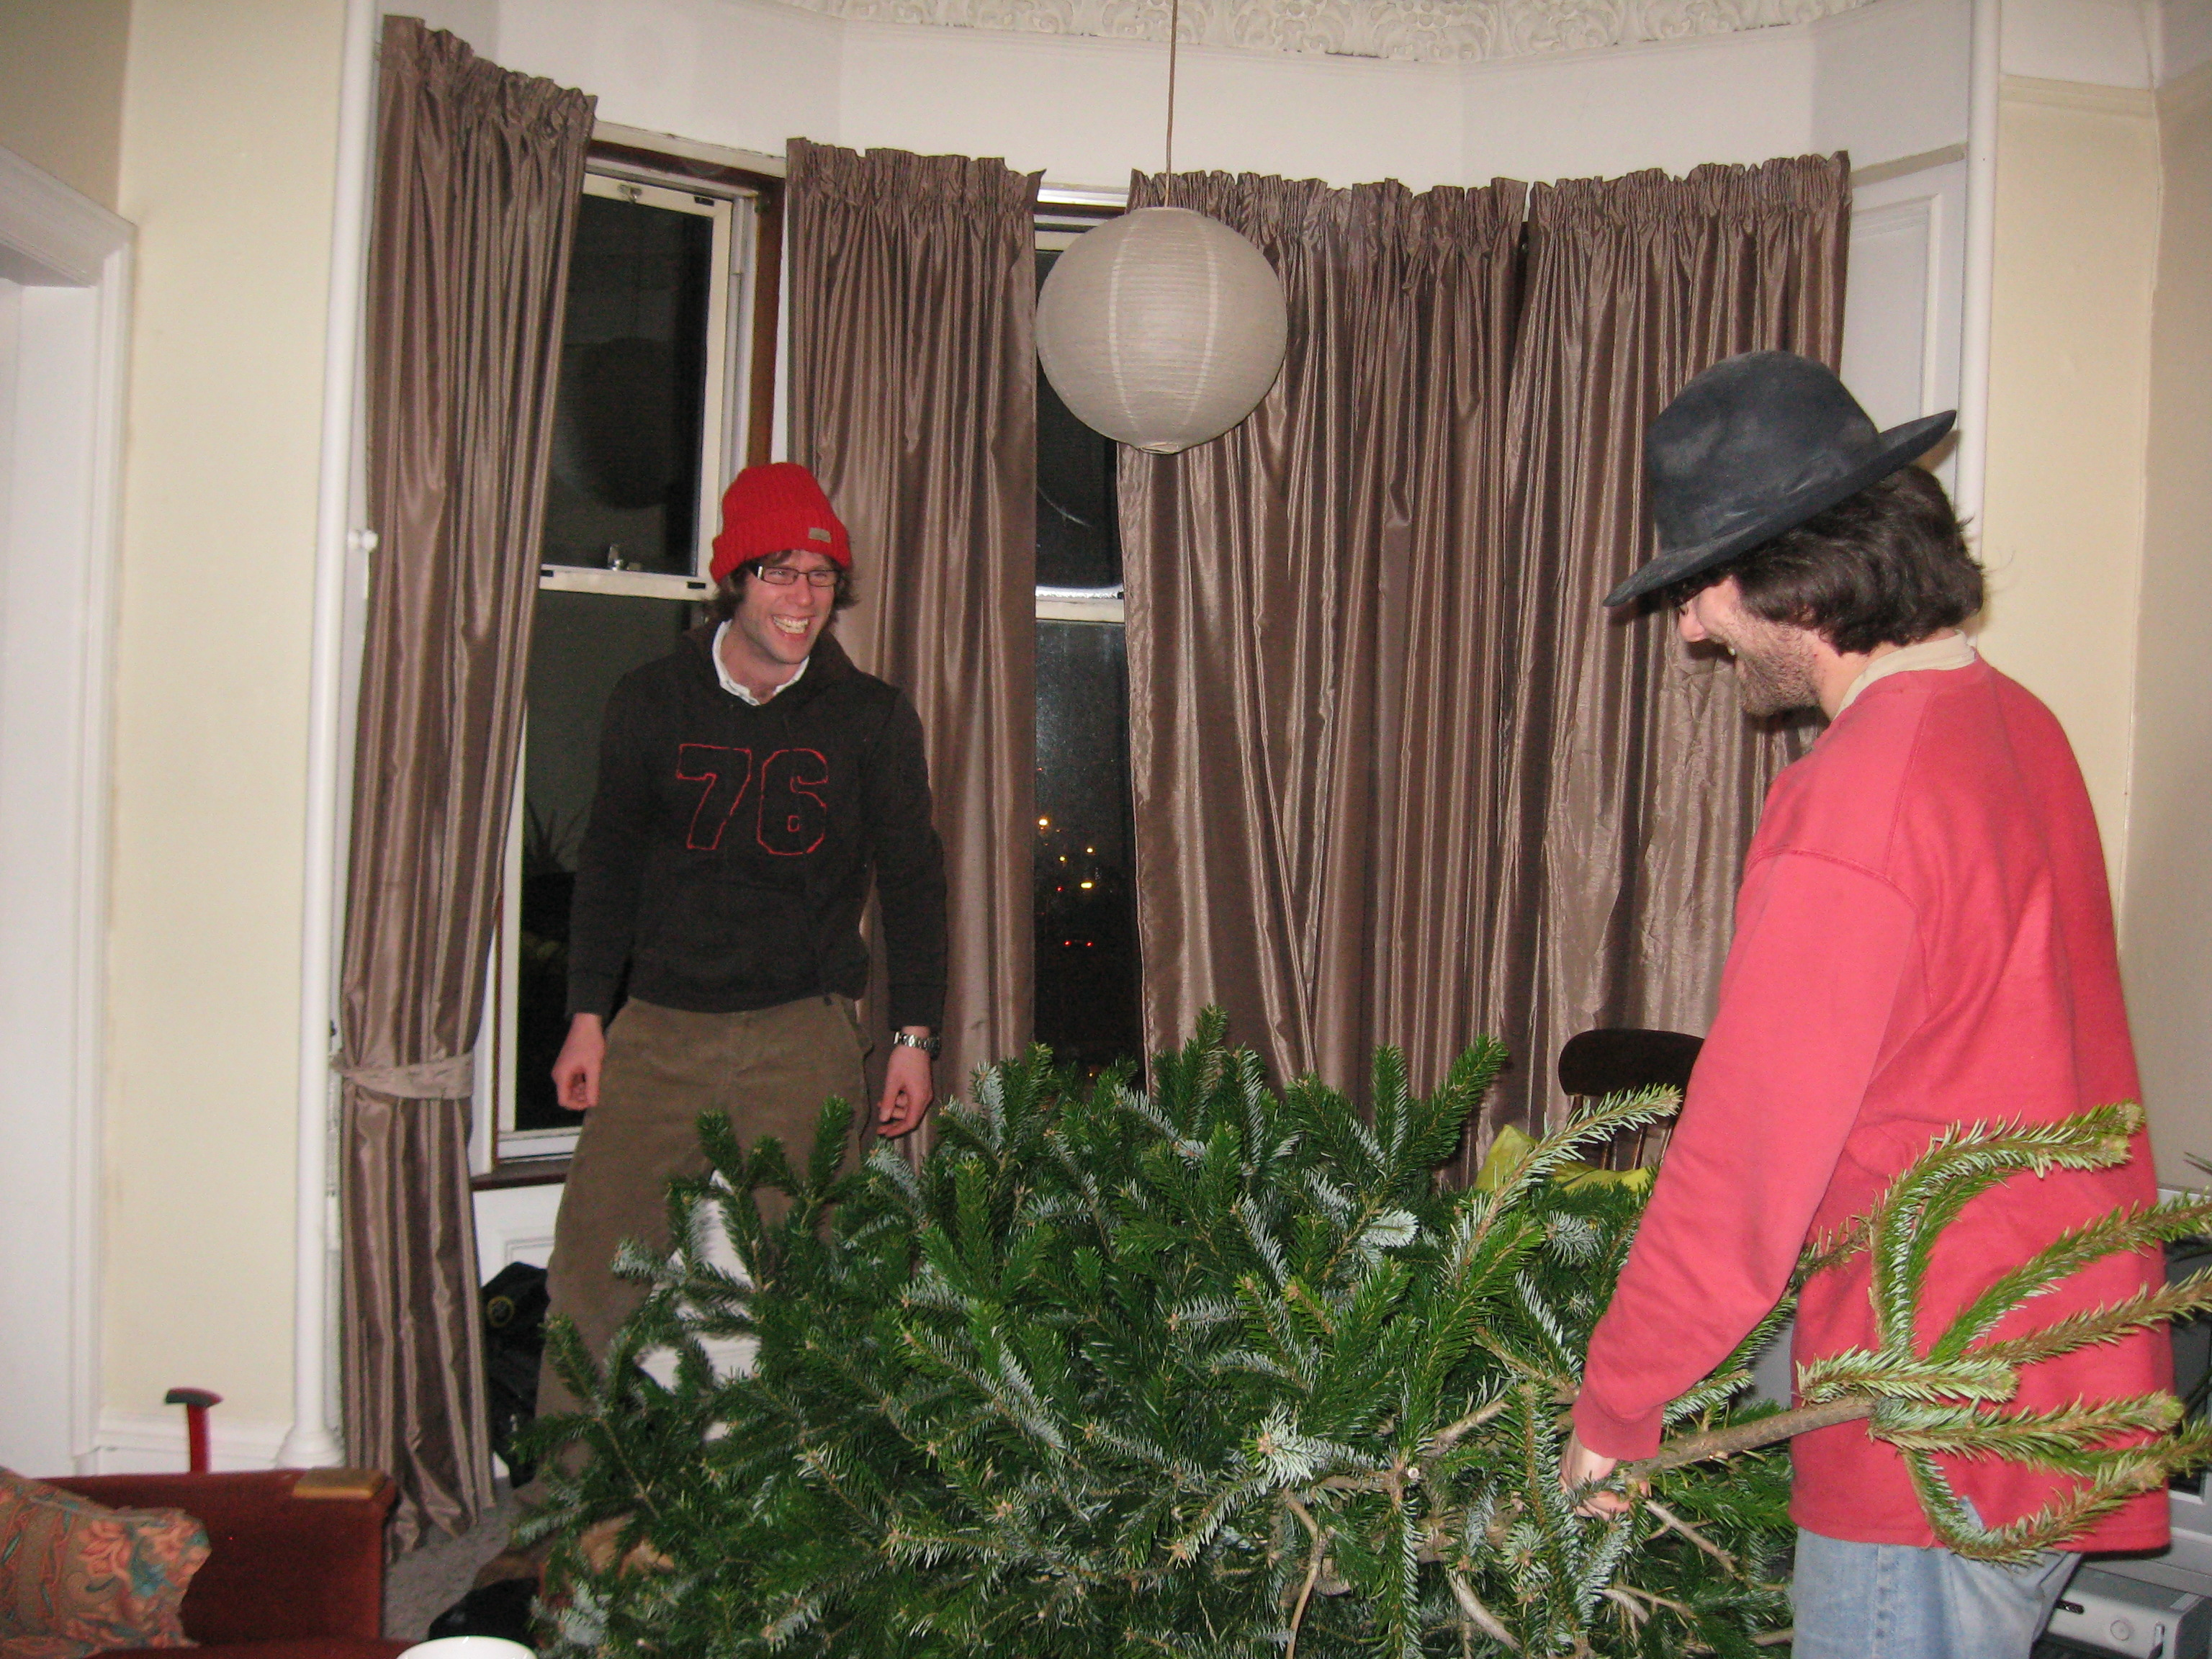 Luckily, AlK was to hand. So AlC and AlK put on their saftey hats and knocked the tree over